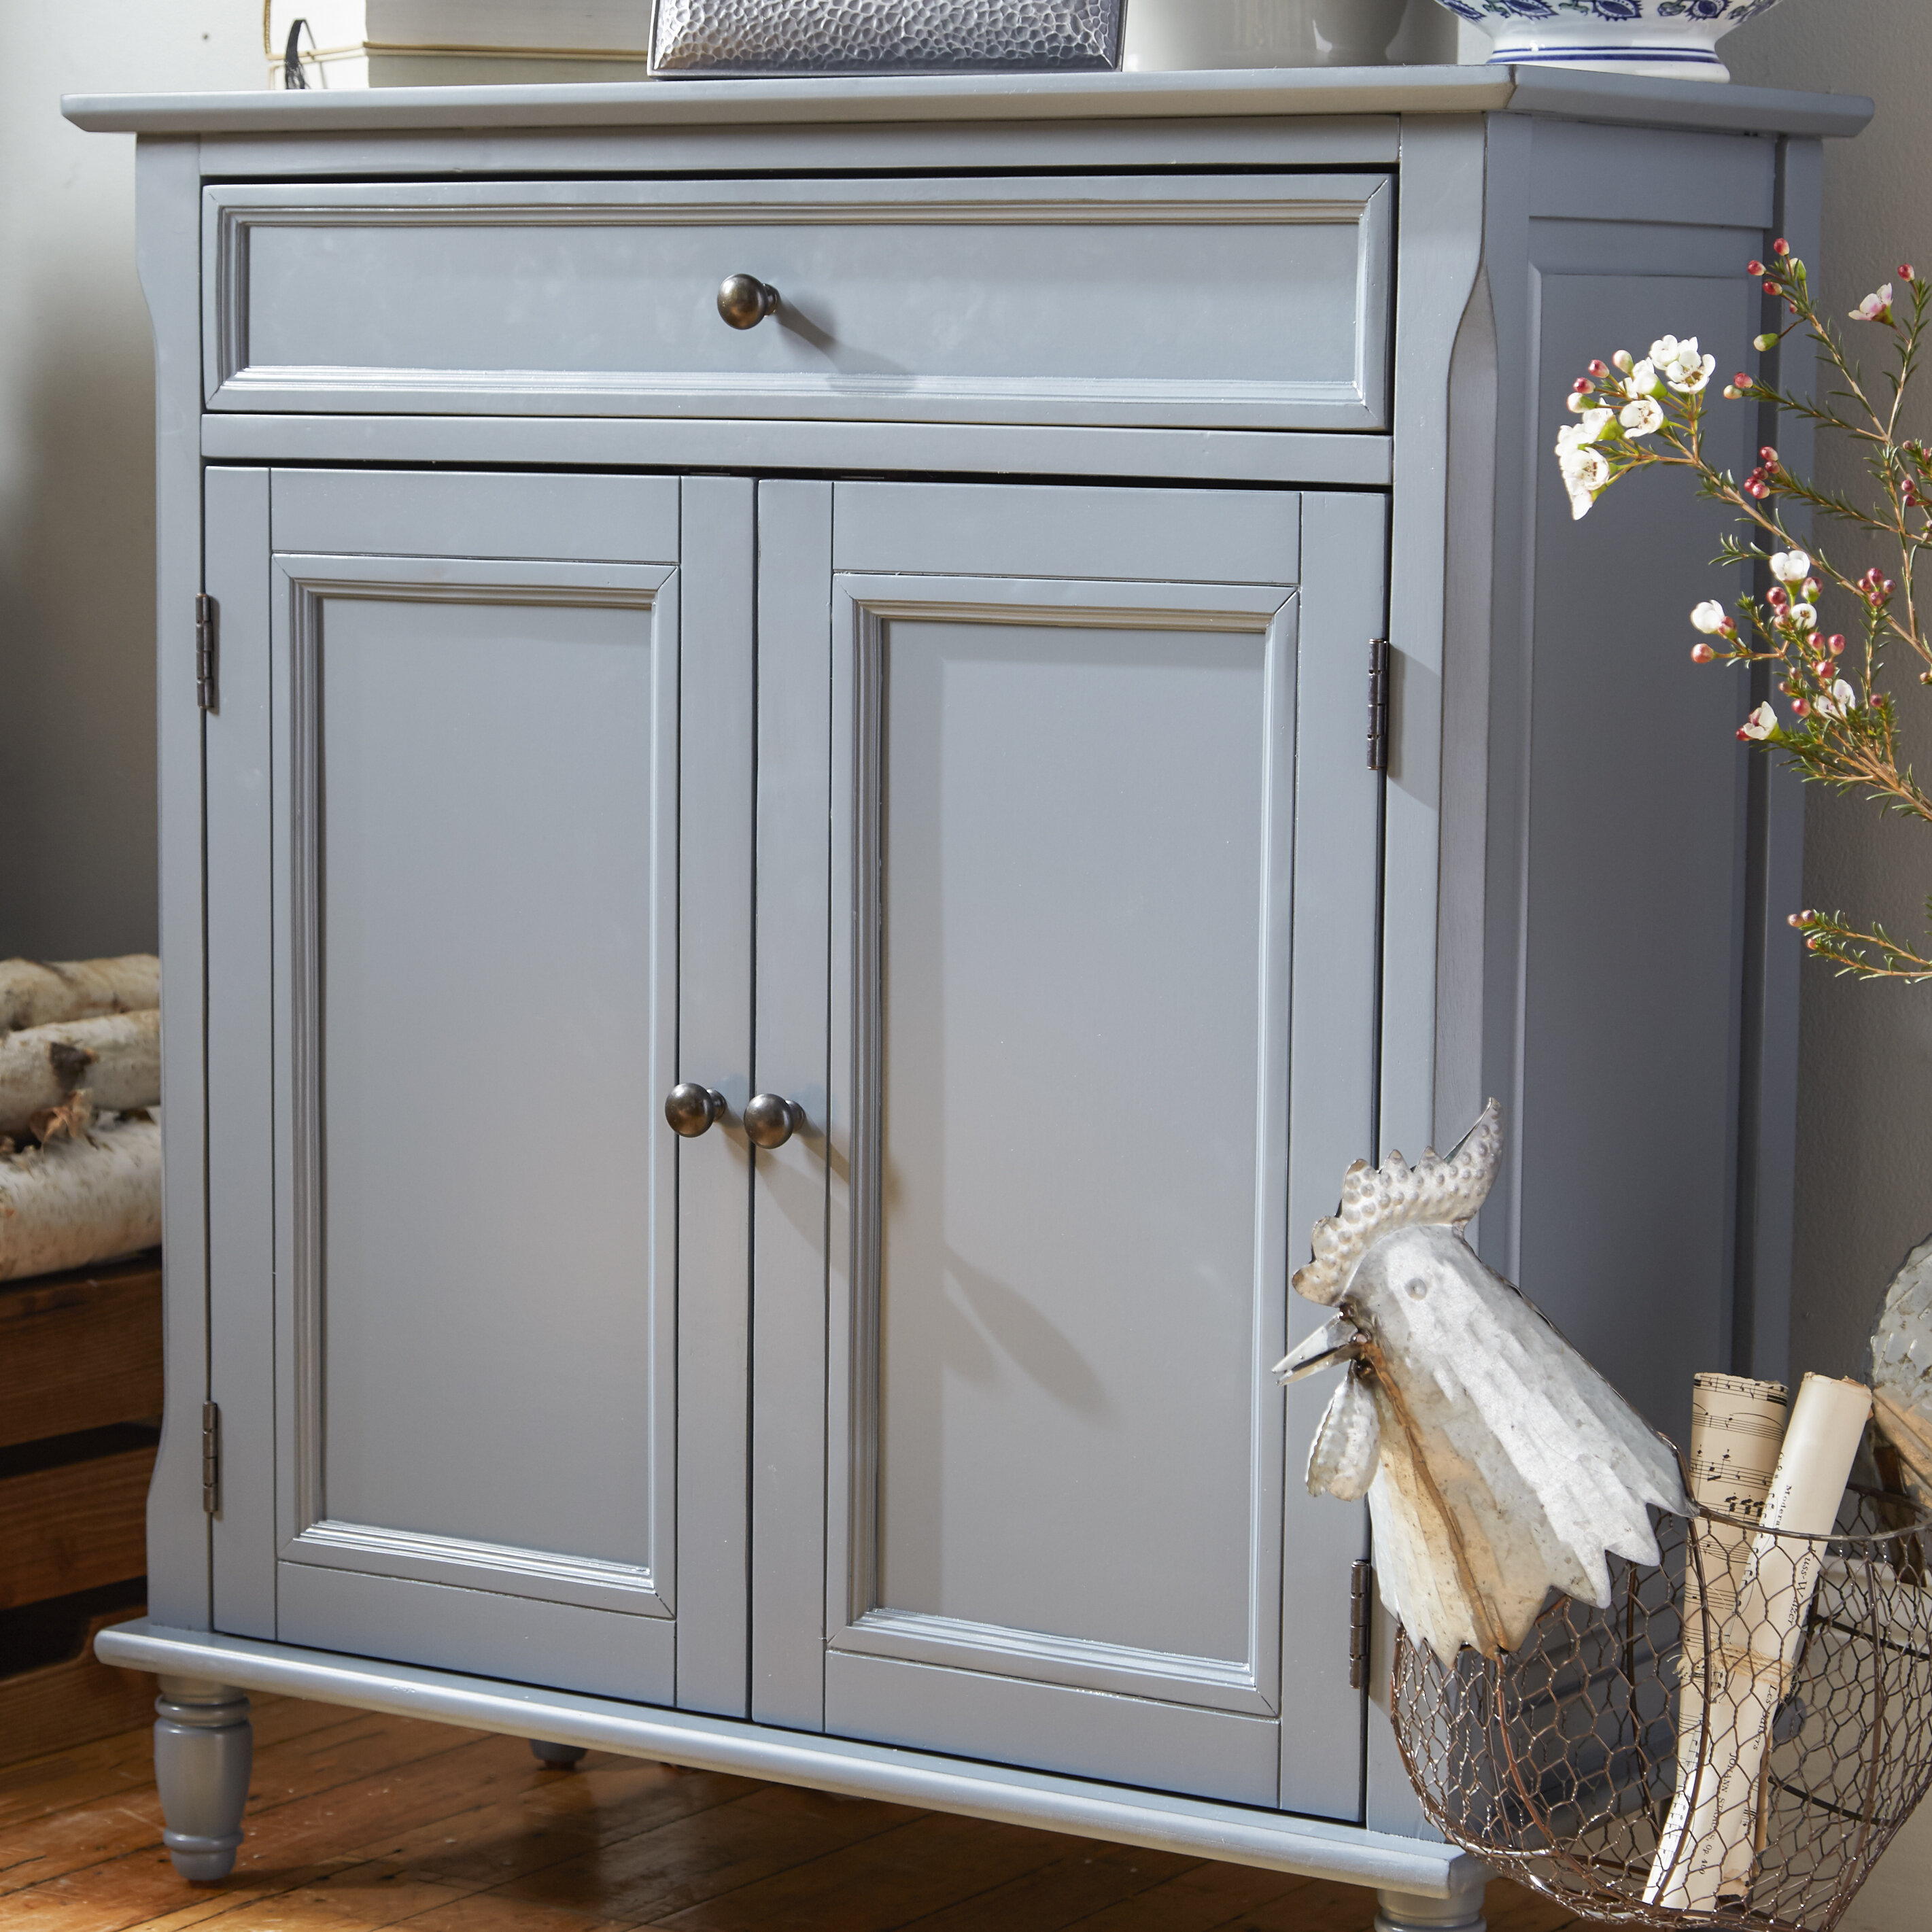 Darby Home Co Durgan Accent Cabinet & Reviews   Wayfair